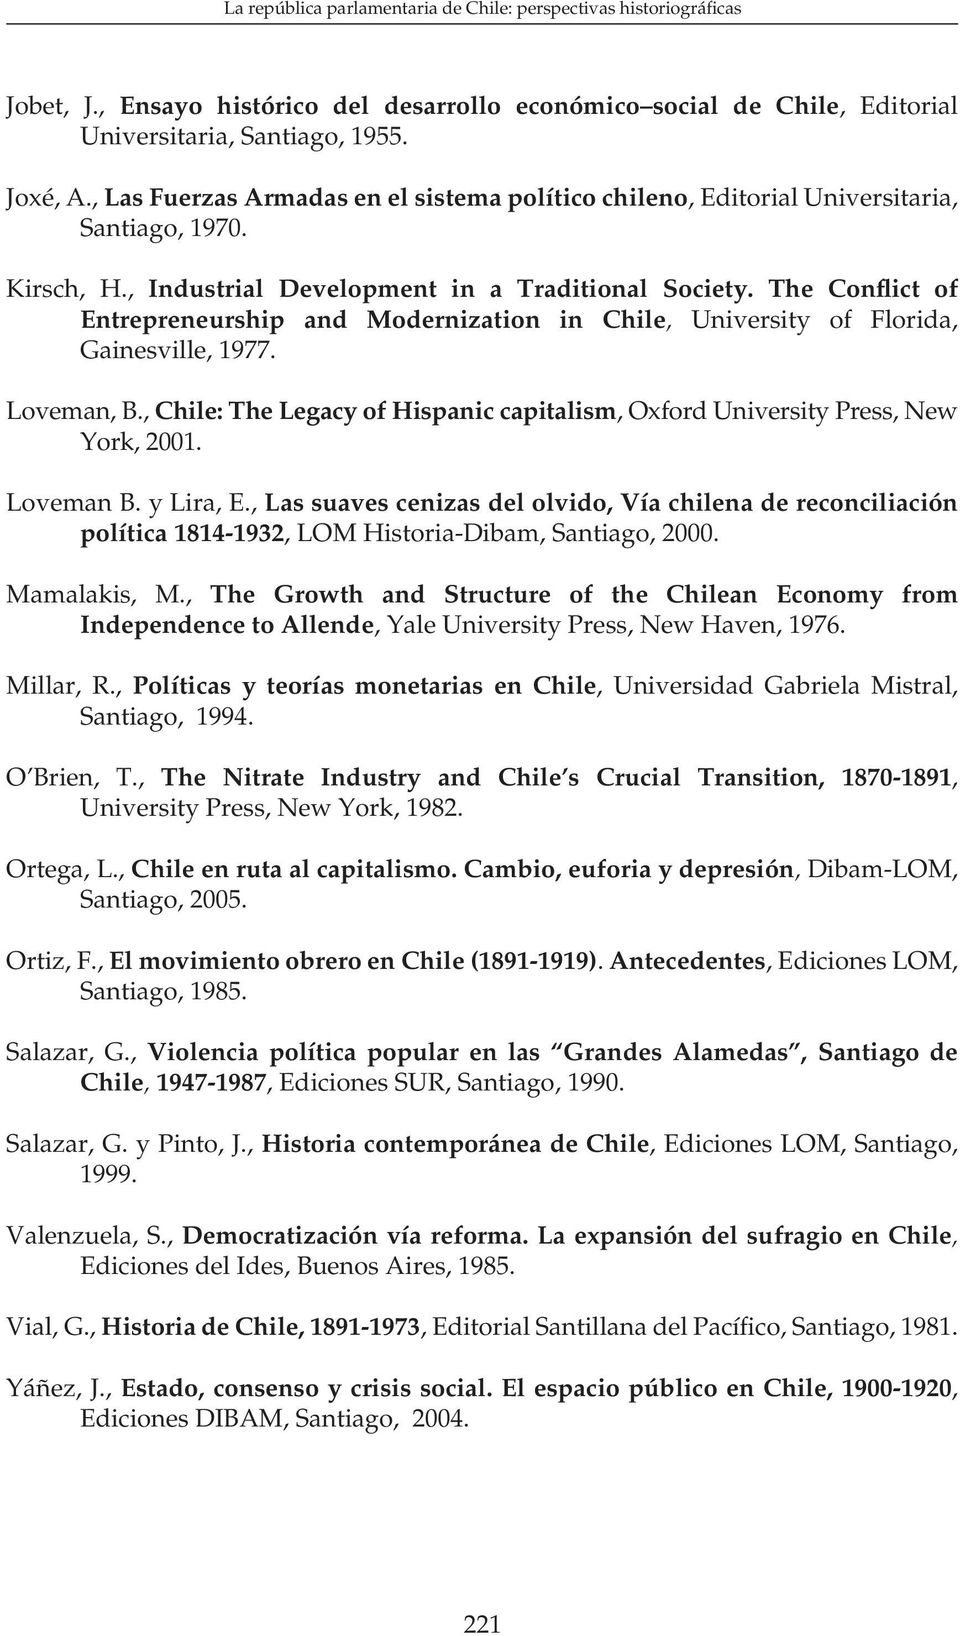 The Con ict of Entrepreneurship and Modernization in Chile, University of Florida, Gainesville, 1977. Loveman, B., Chile: The Legacy of Hispanic capitalism, Oxford University Press, New York, 2001.